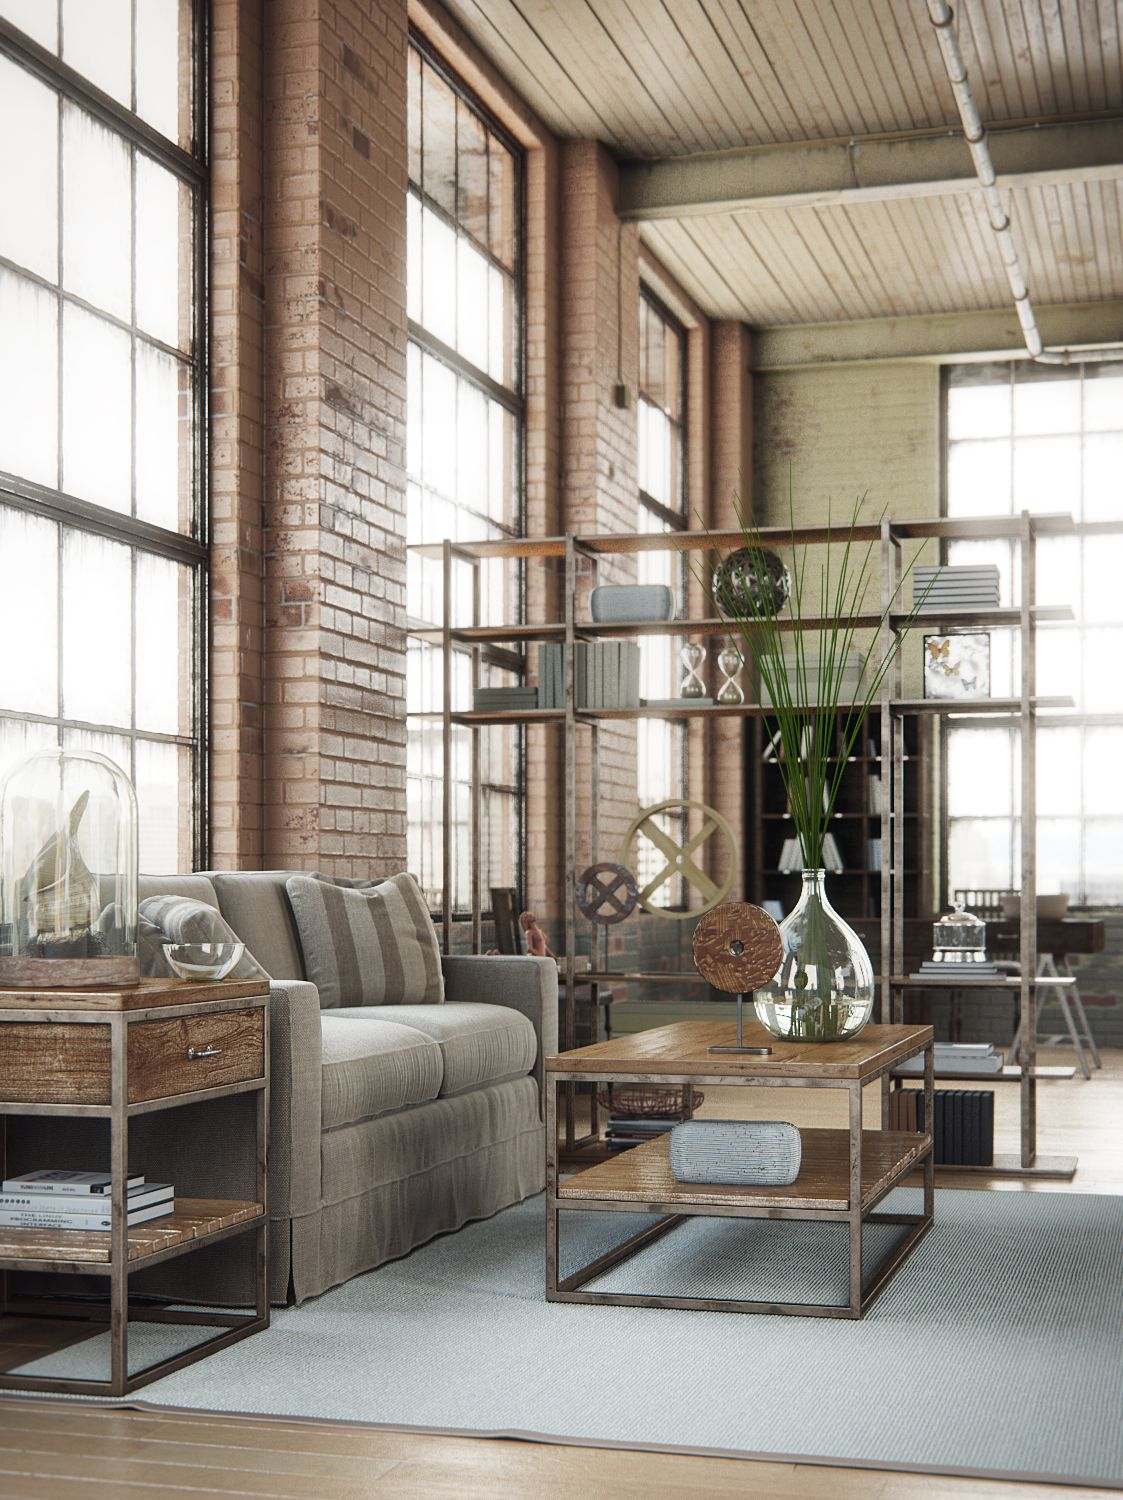 Industrial Design: Industrial Interior, Created By Alex Coman Using 3ds Max